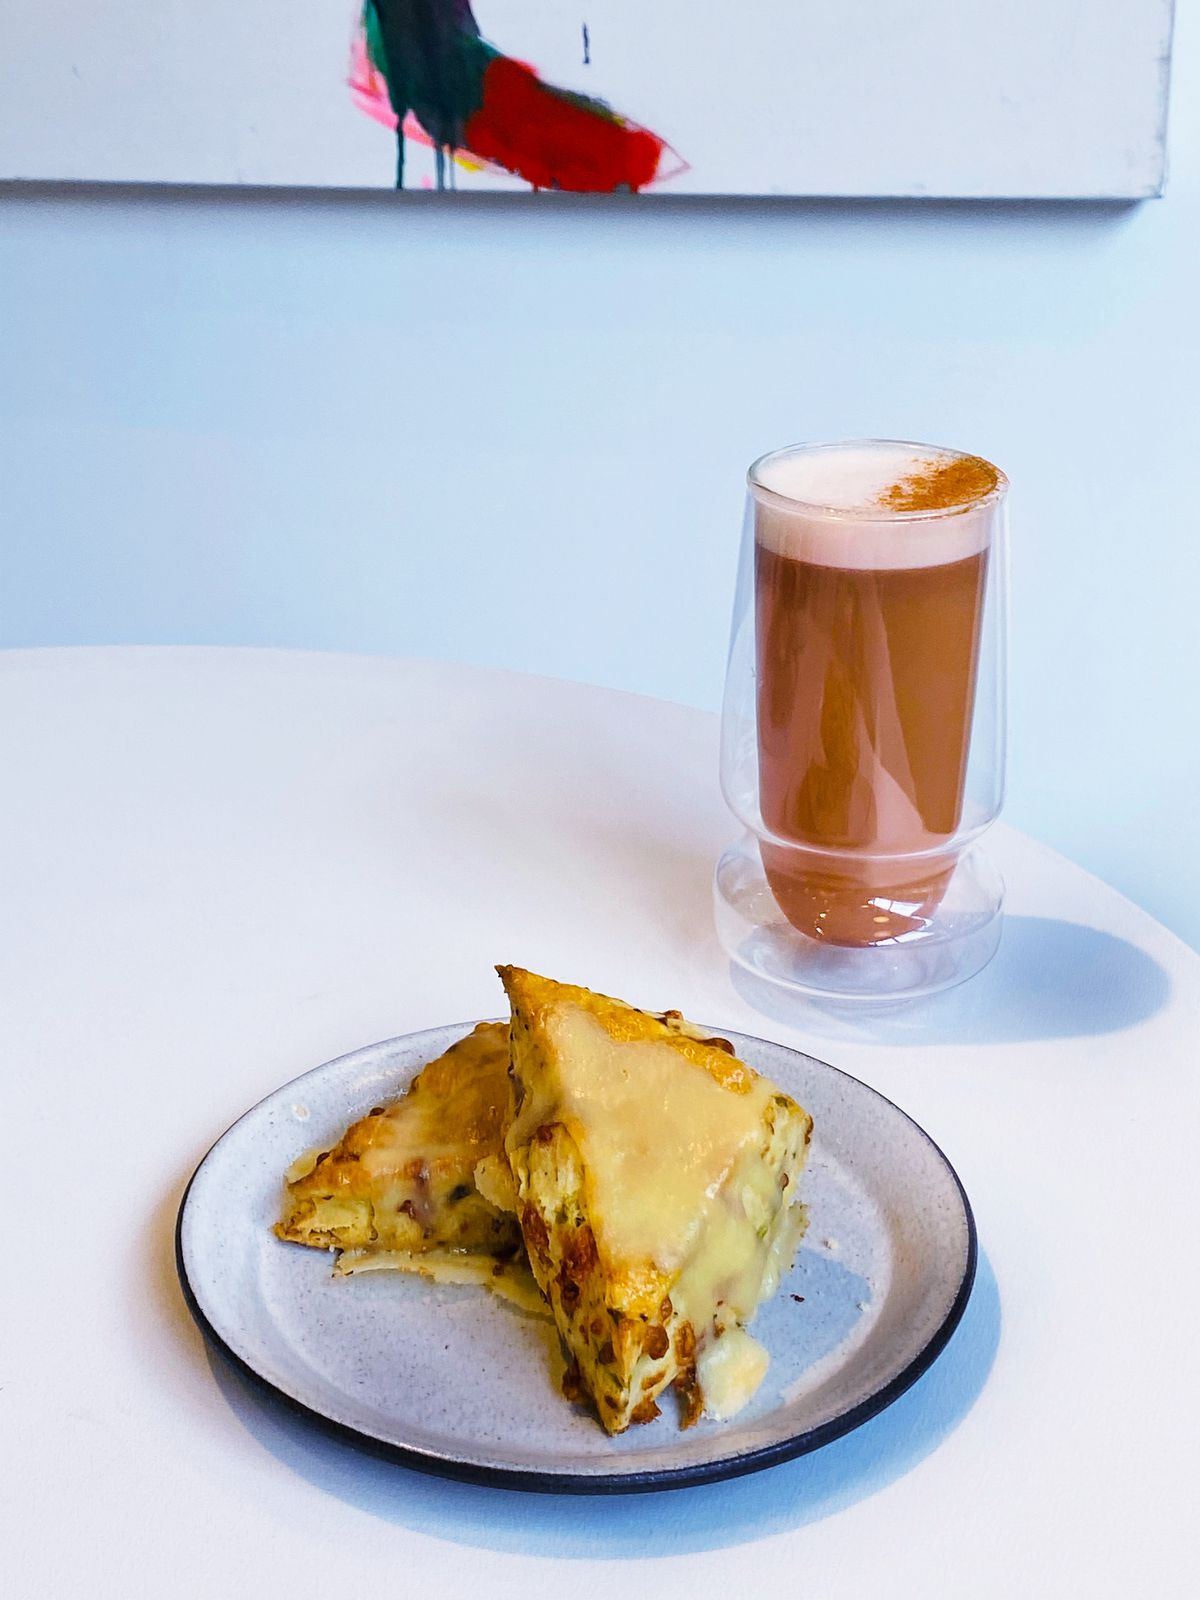 A plate with two scones with yellow melted cheese on top. A glass sits behind the plate with a brownish liquid in it.